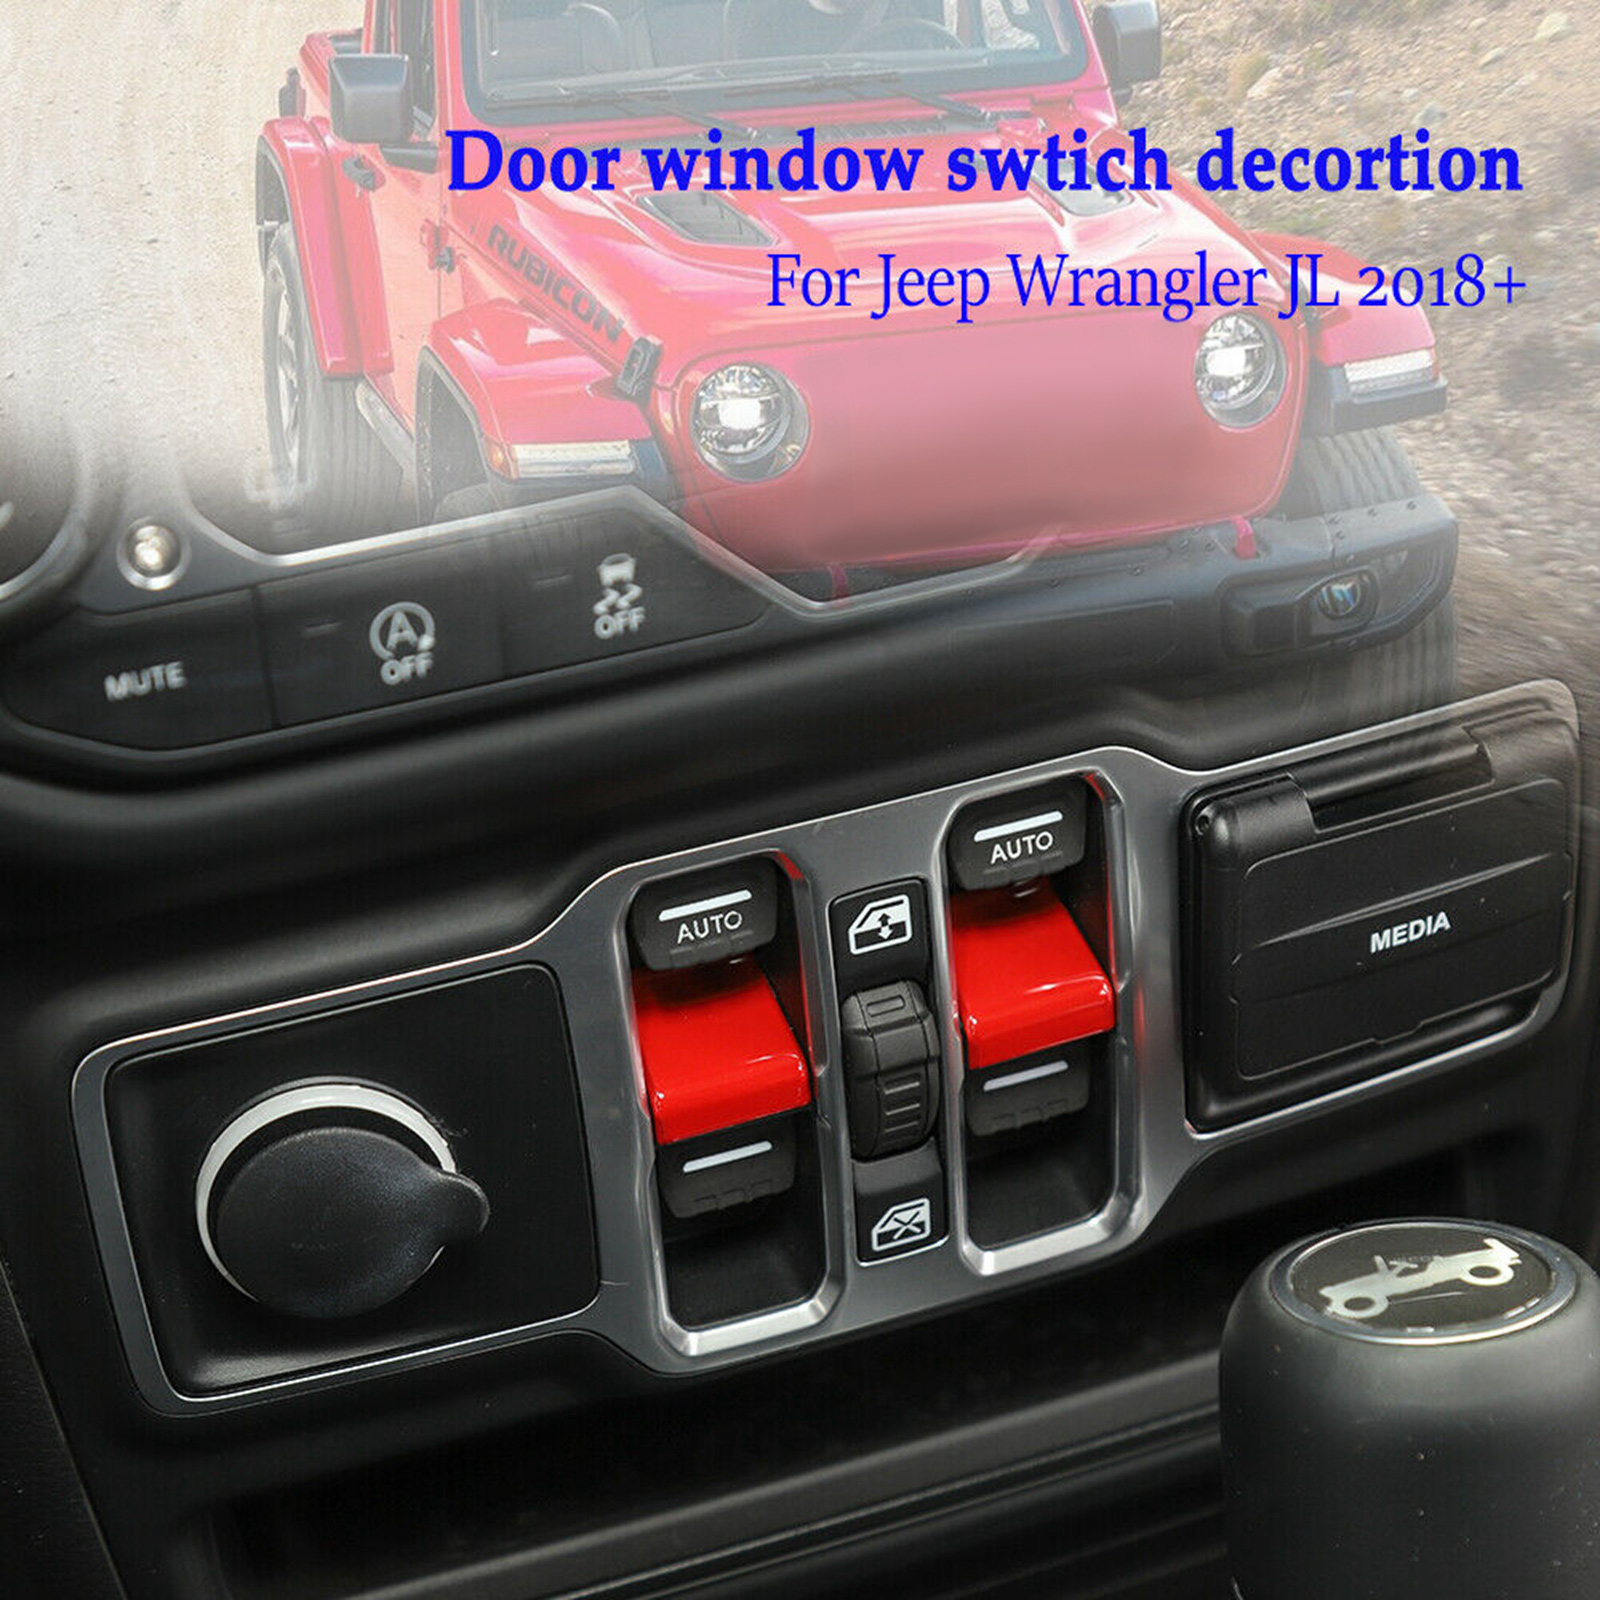 Door Lock Switch Button Cover Decor Sticker Red ABS For Jeep Wrangler JL 2018